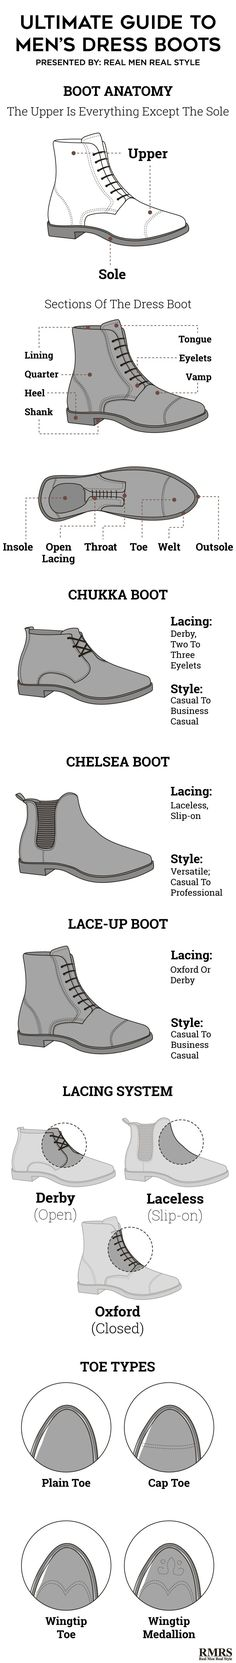 Ultimate Guide To Dress Boots For Men